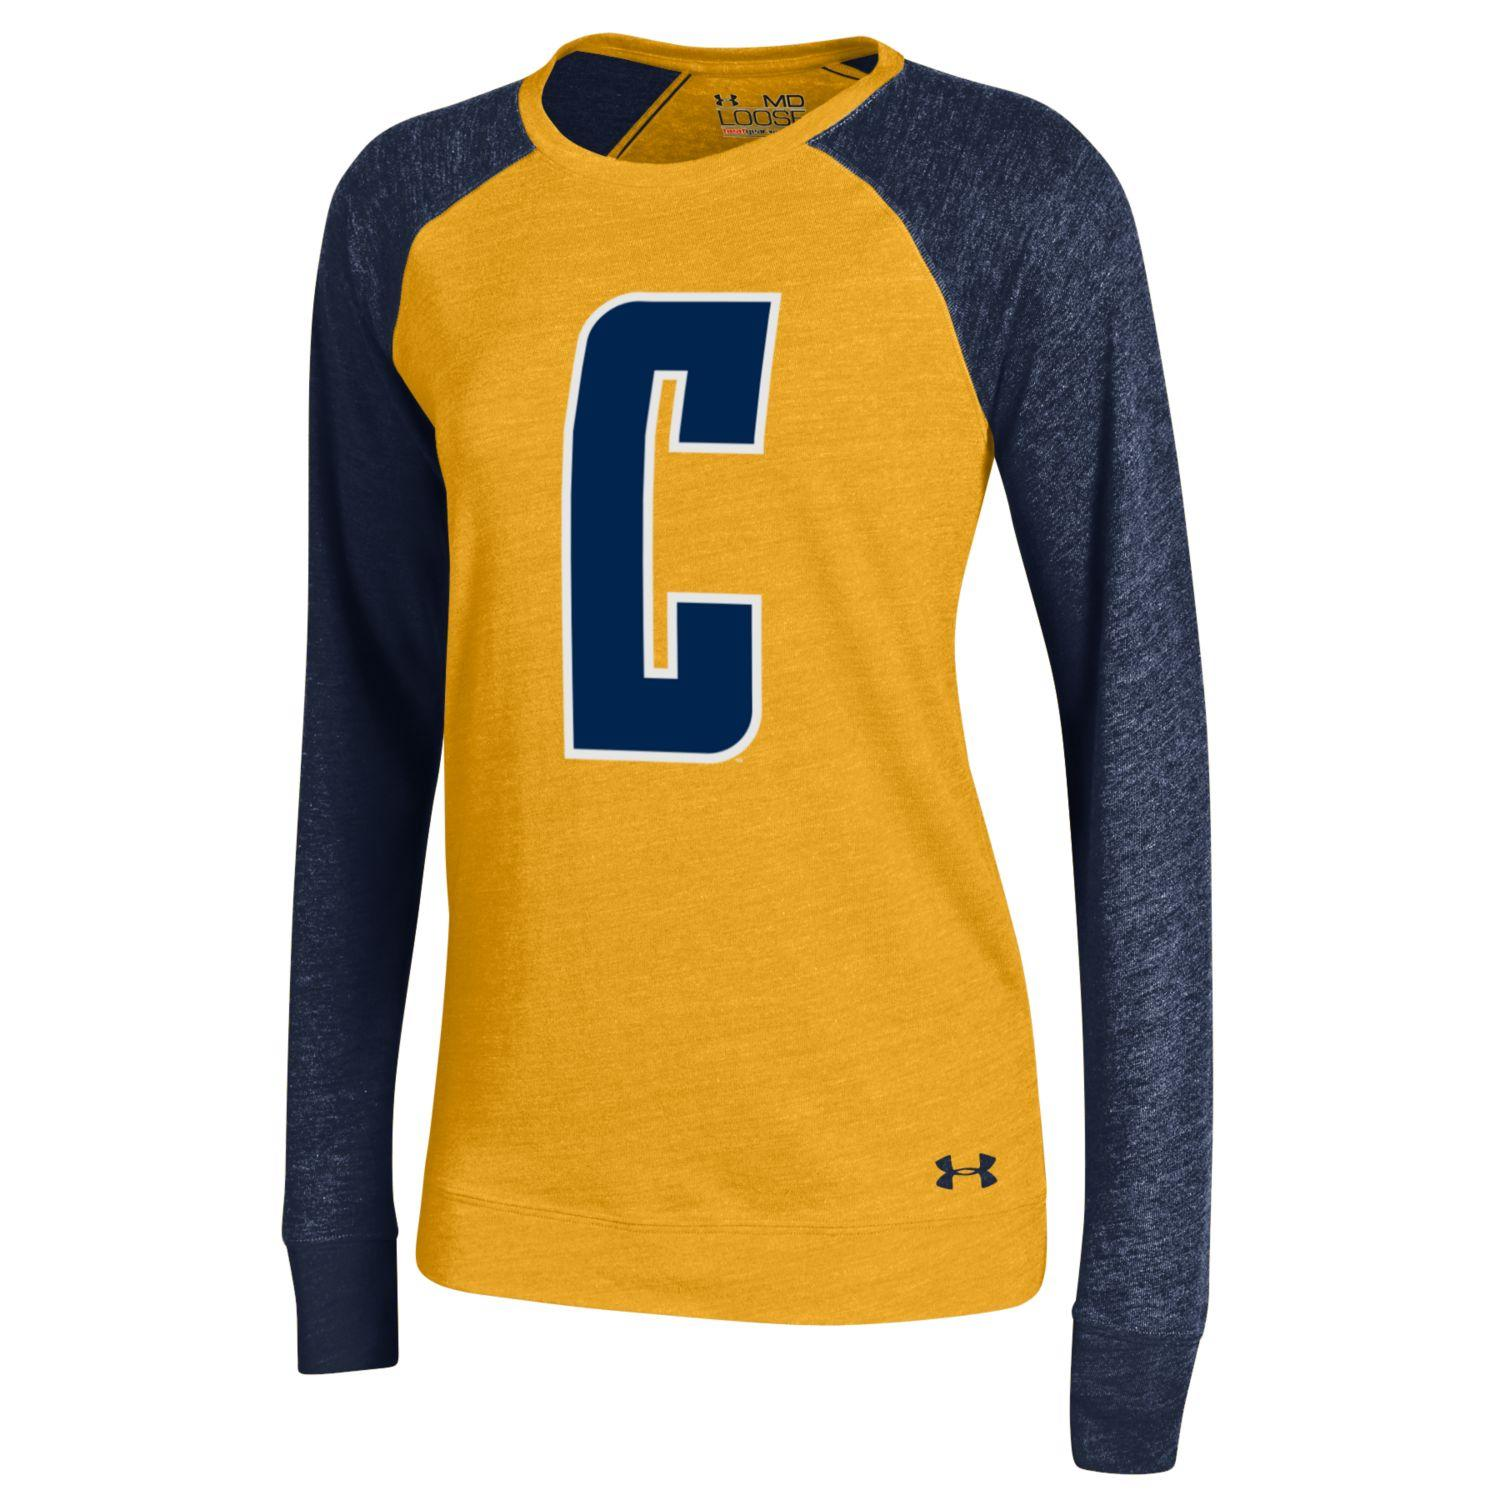 "MD25-Under Armour Women's Triblend Baseball Tee ""Berkeley"""